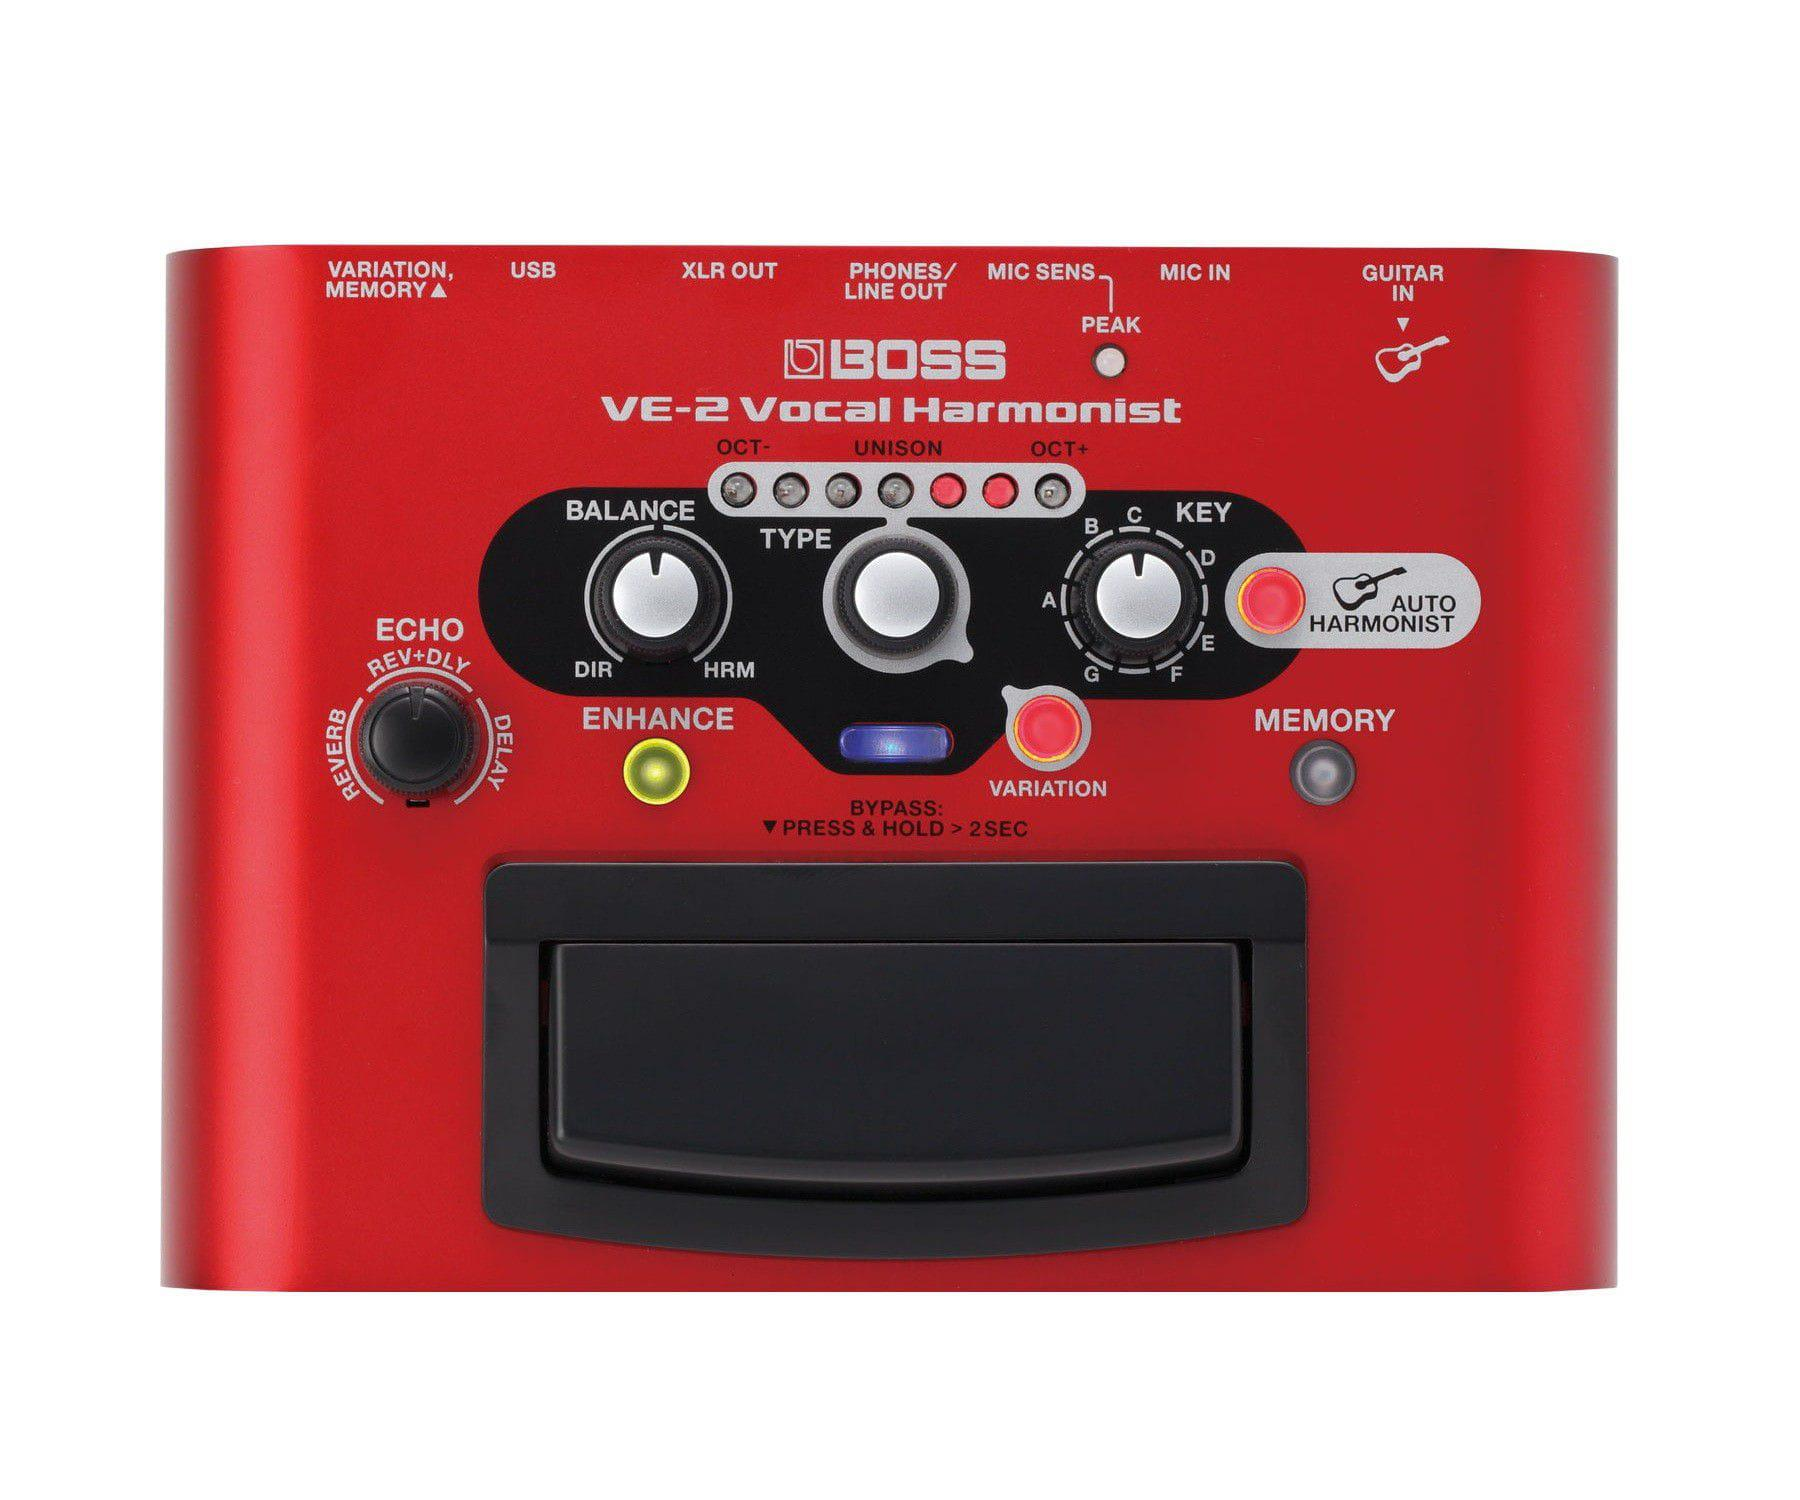 Boss Pedal de Efeito para Voz VE-2 Vocal Harmonist